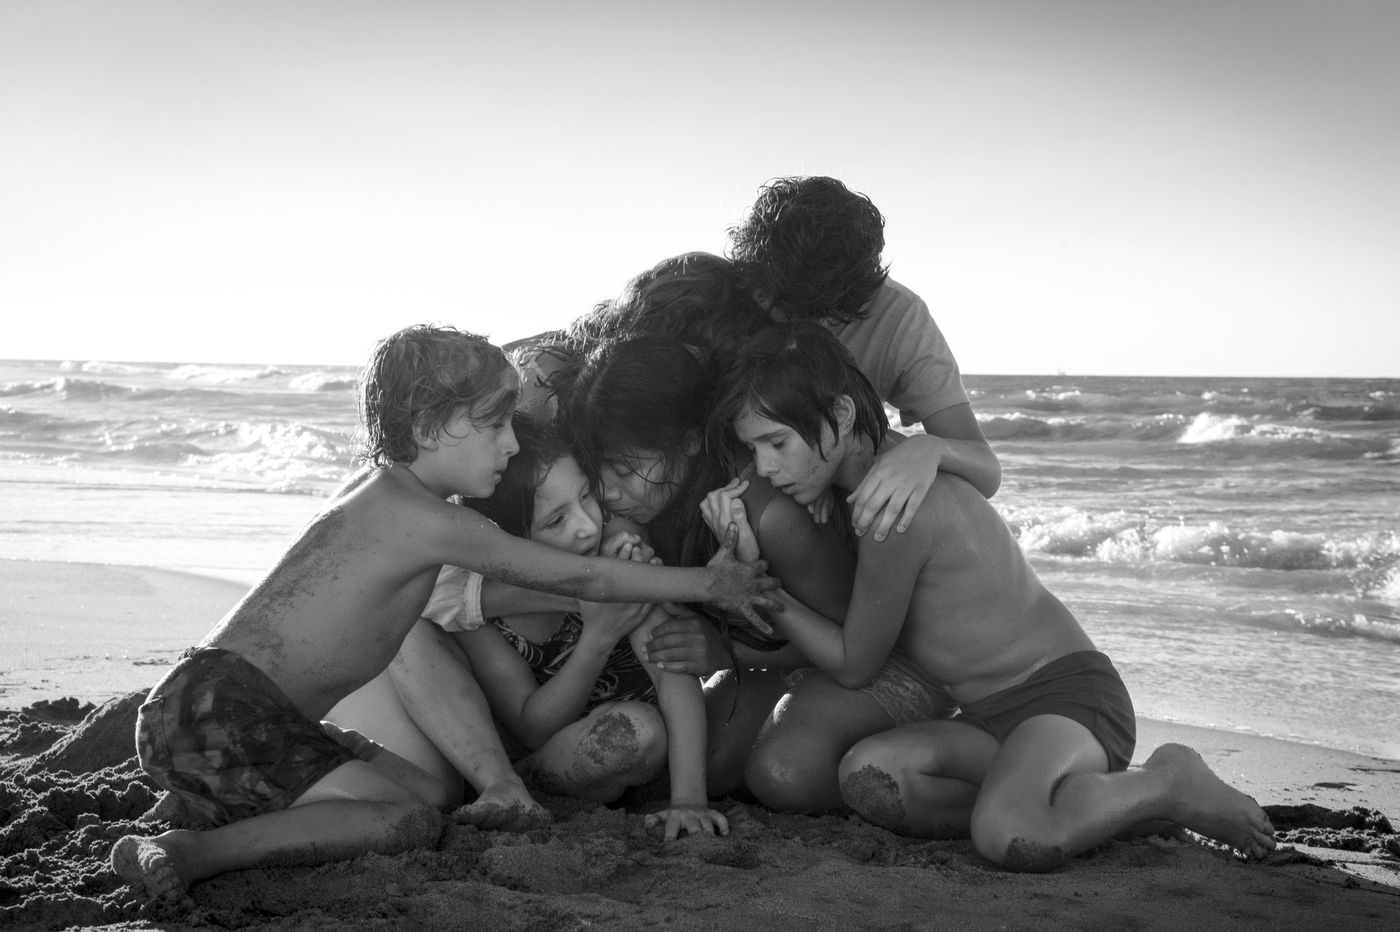 'Roma': Curaon's heartfelt tribute to the women who raised him